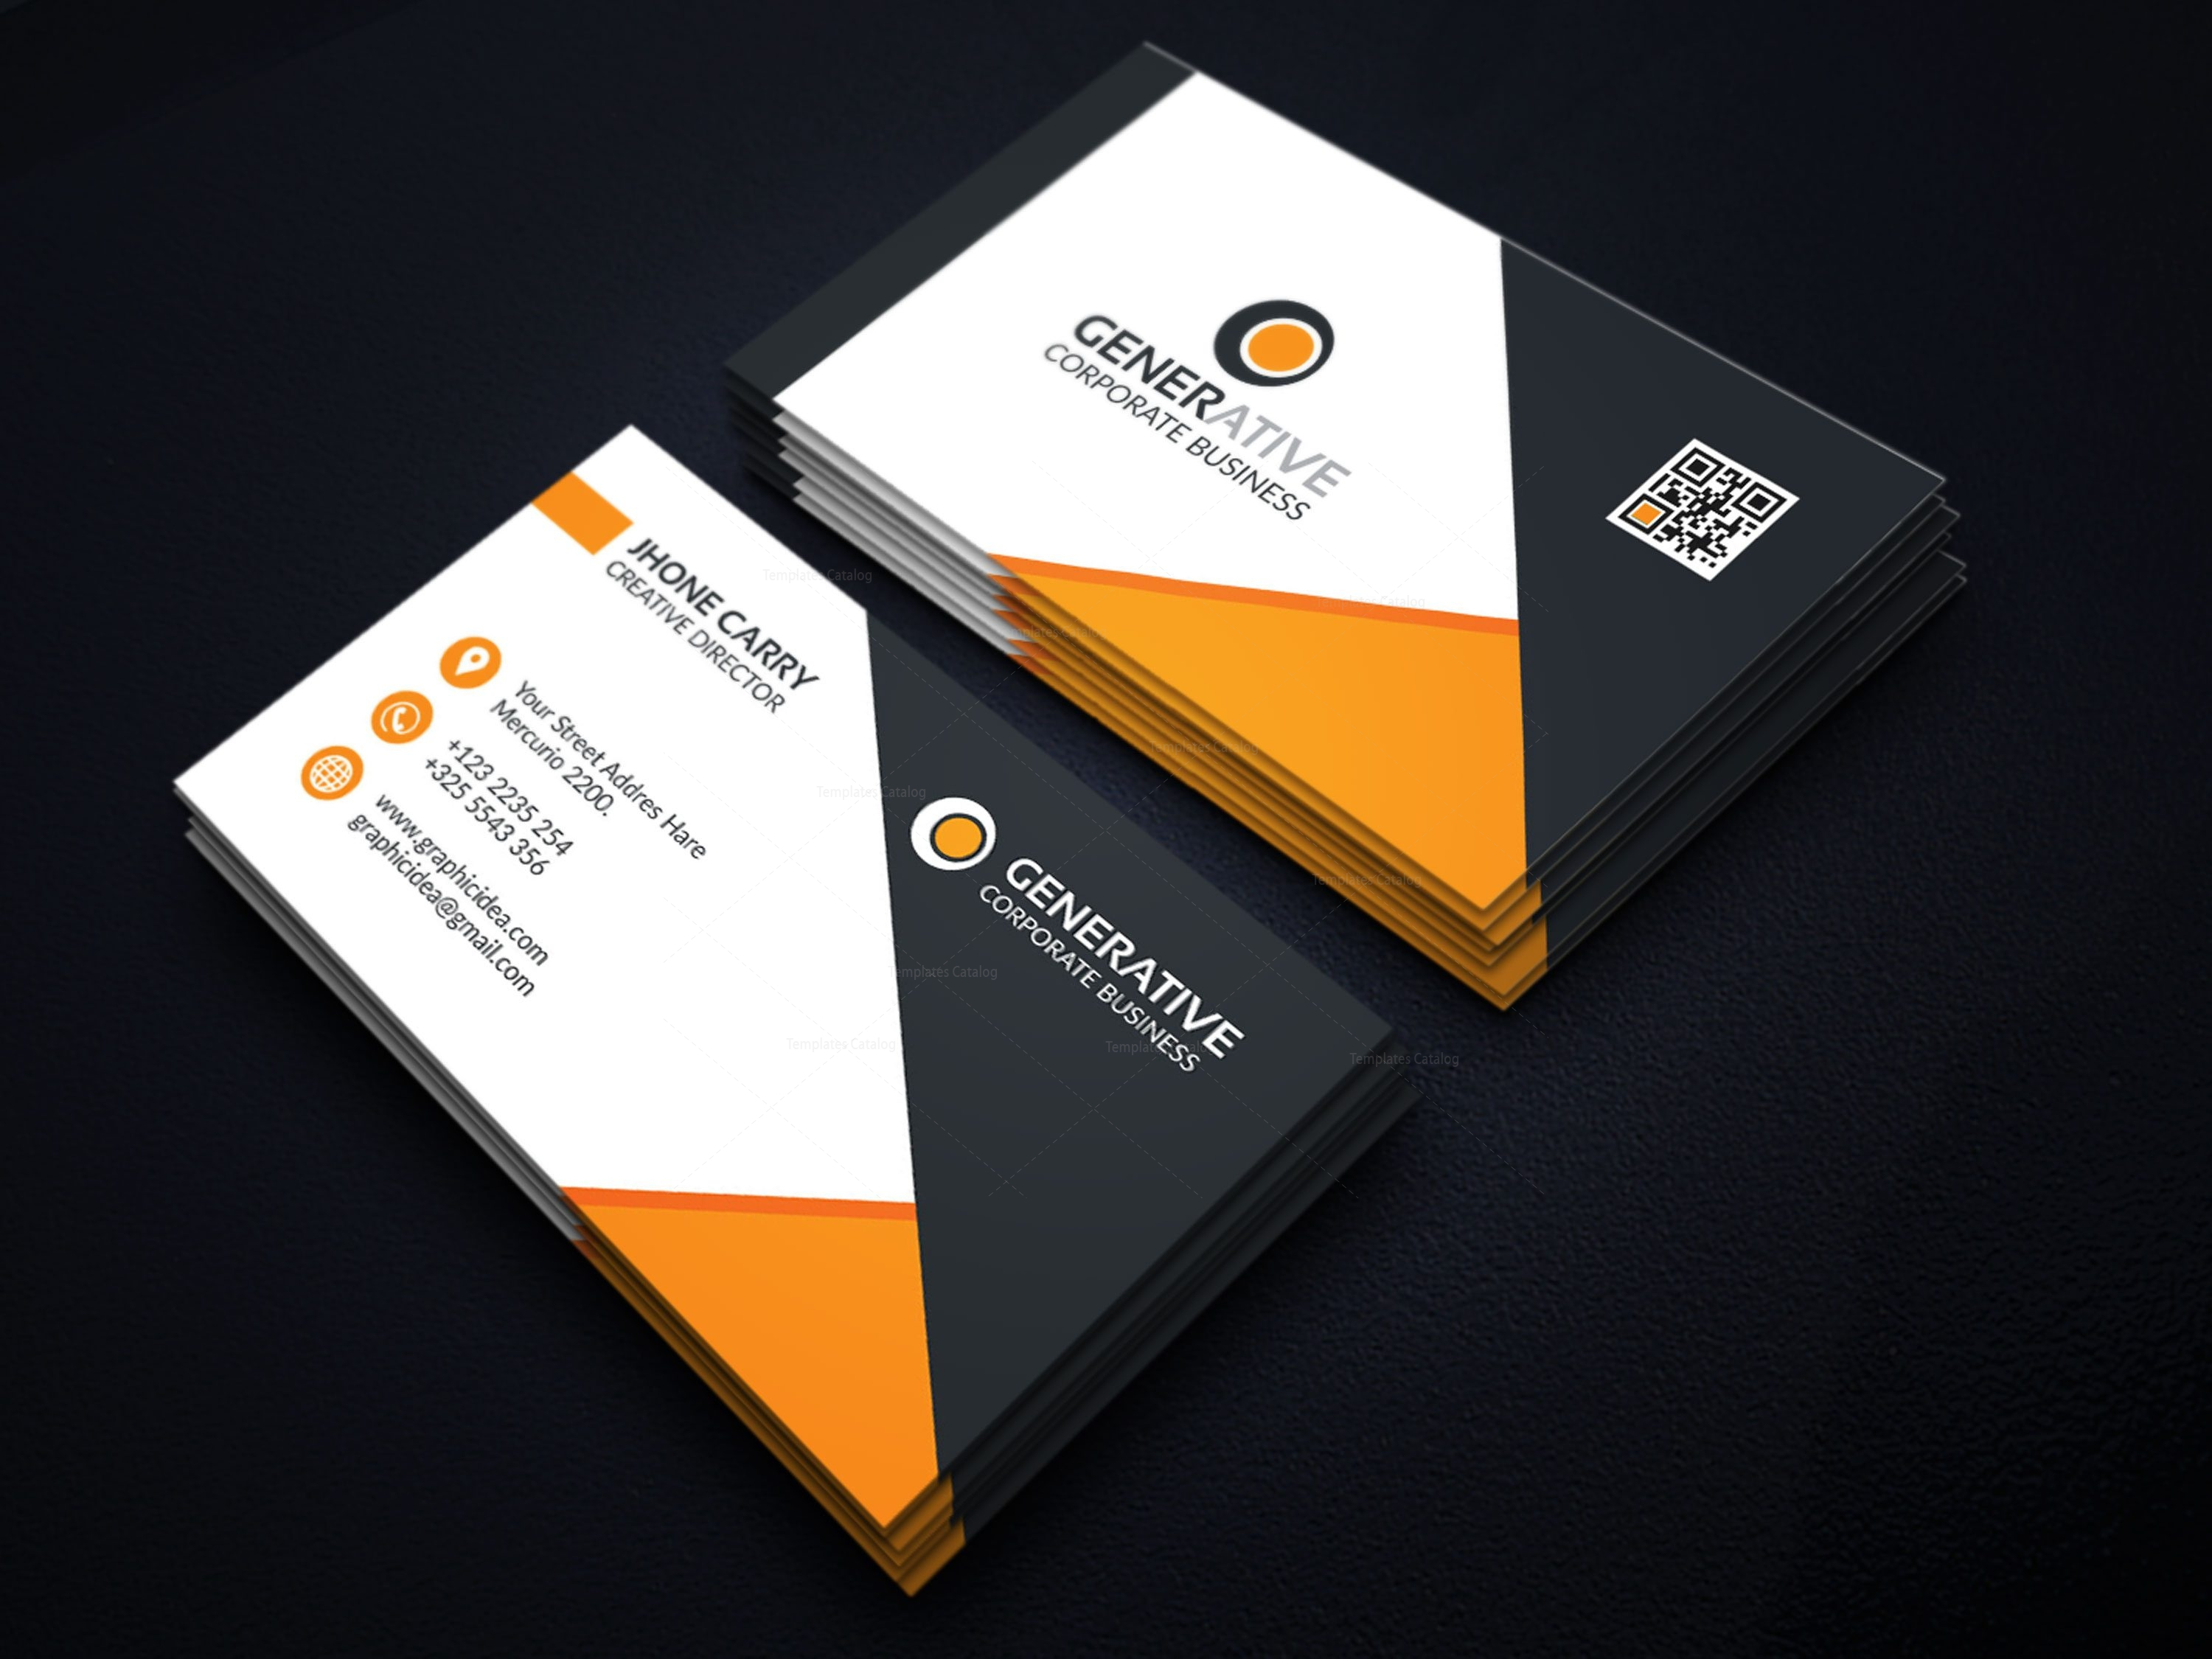 Eps creative business card design template 001596 template catalog eps creative business card design template friedricerecipe Choice Image